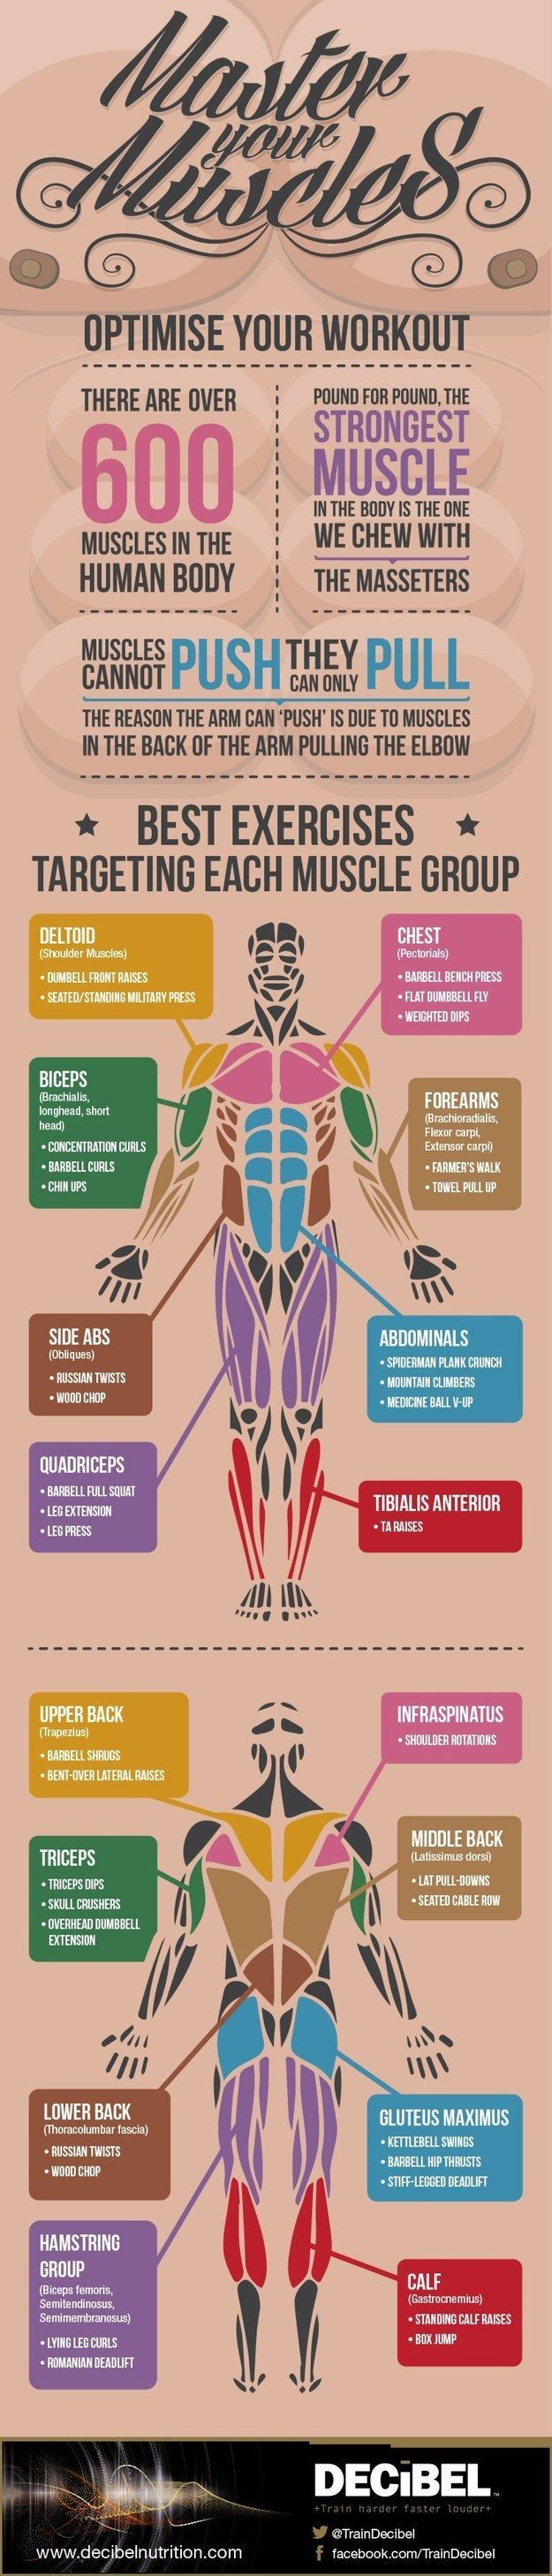 Get acquainted with some exercise basics — like your major muscle groups and the best exercises for each. | 16 Super-Helpful Charts That Teach You How To Actually Work Out